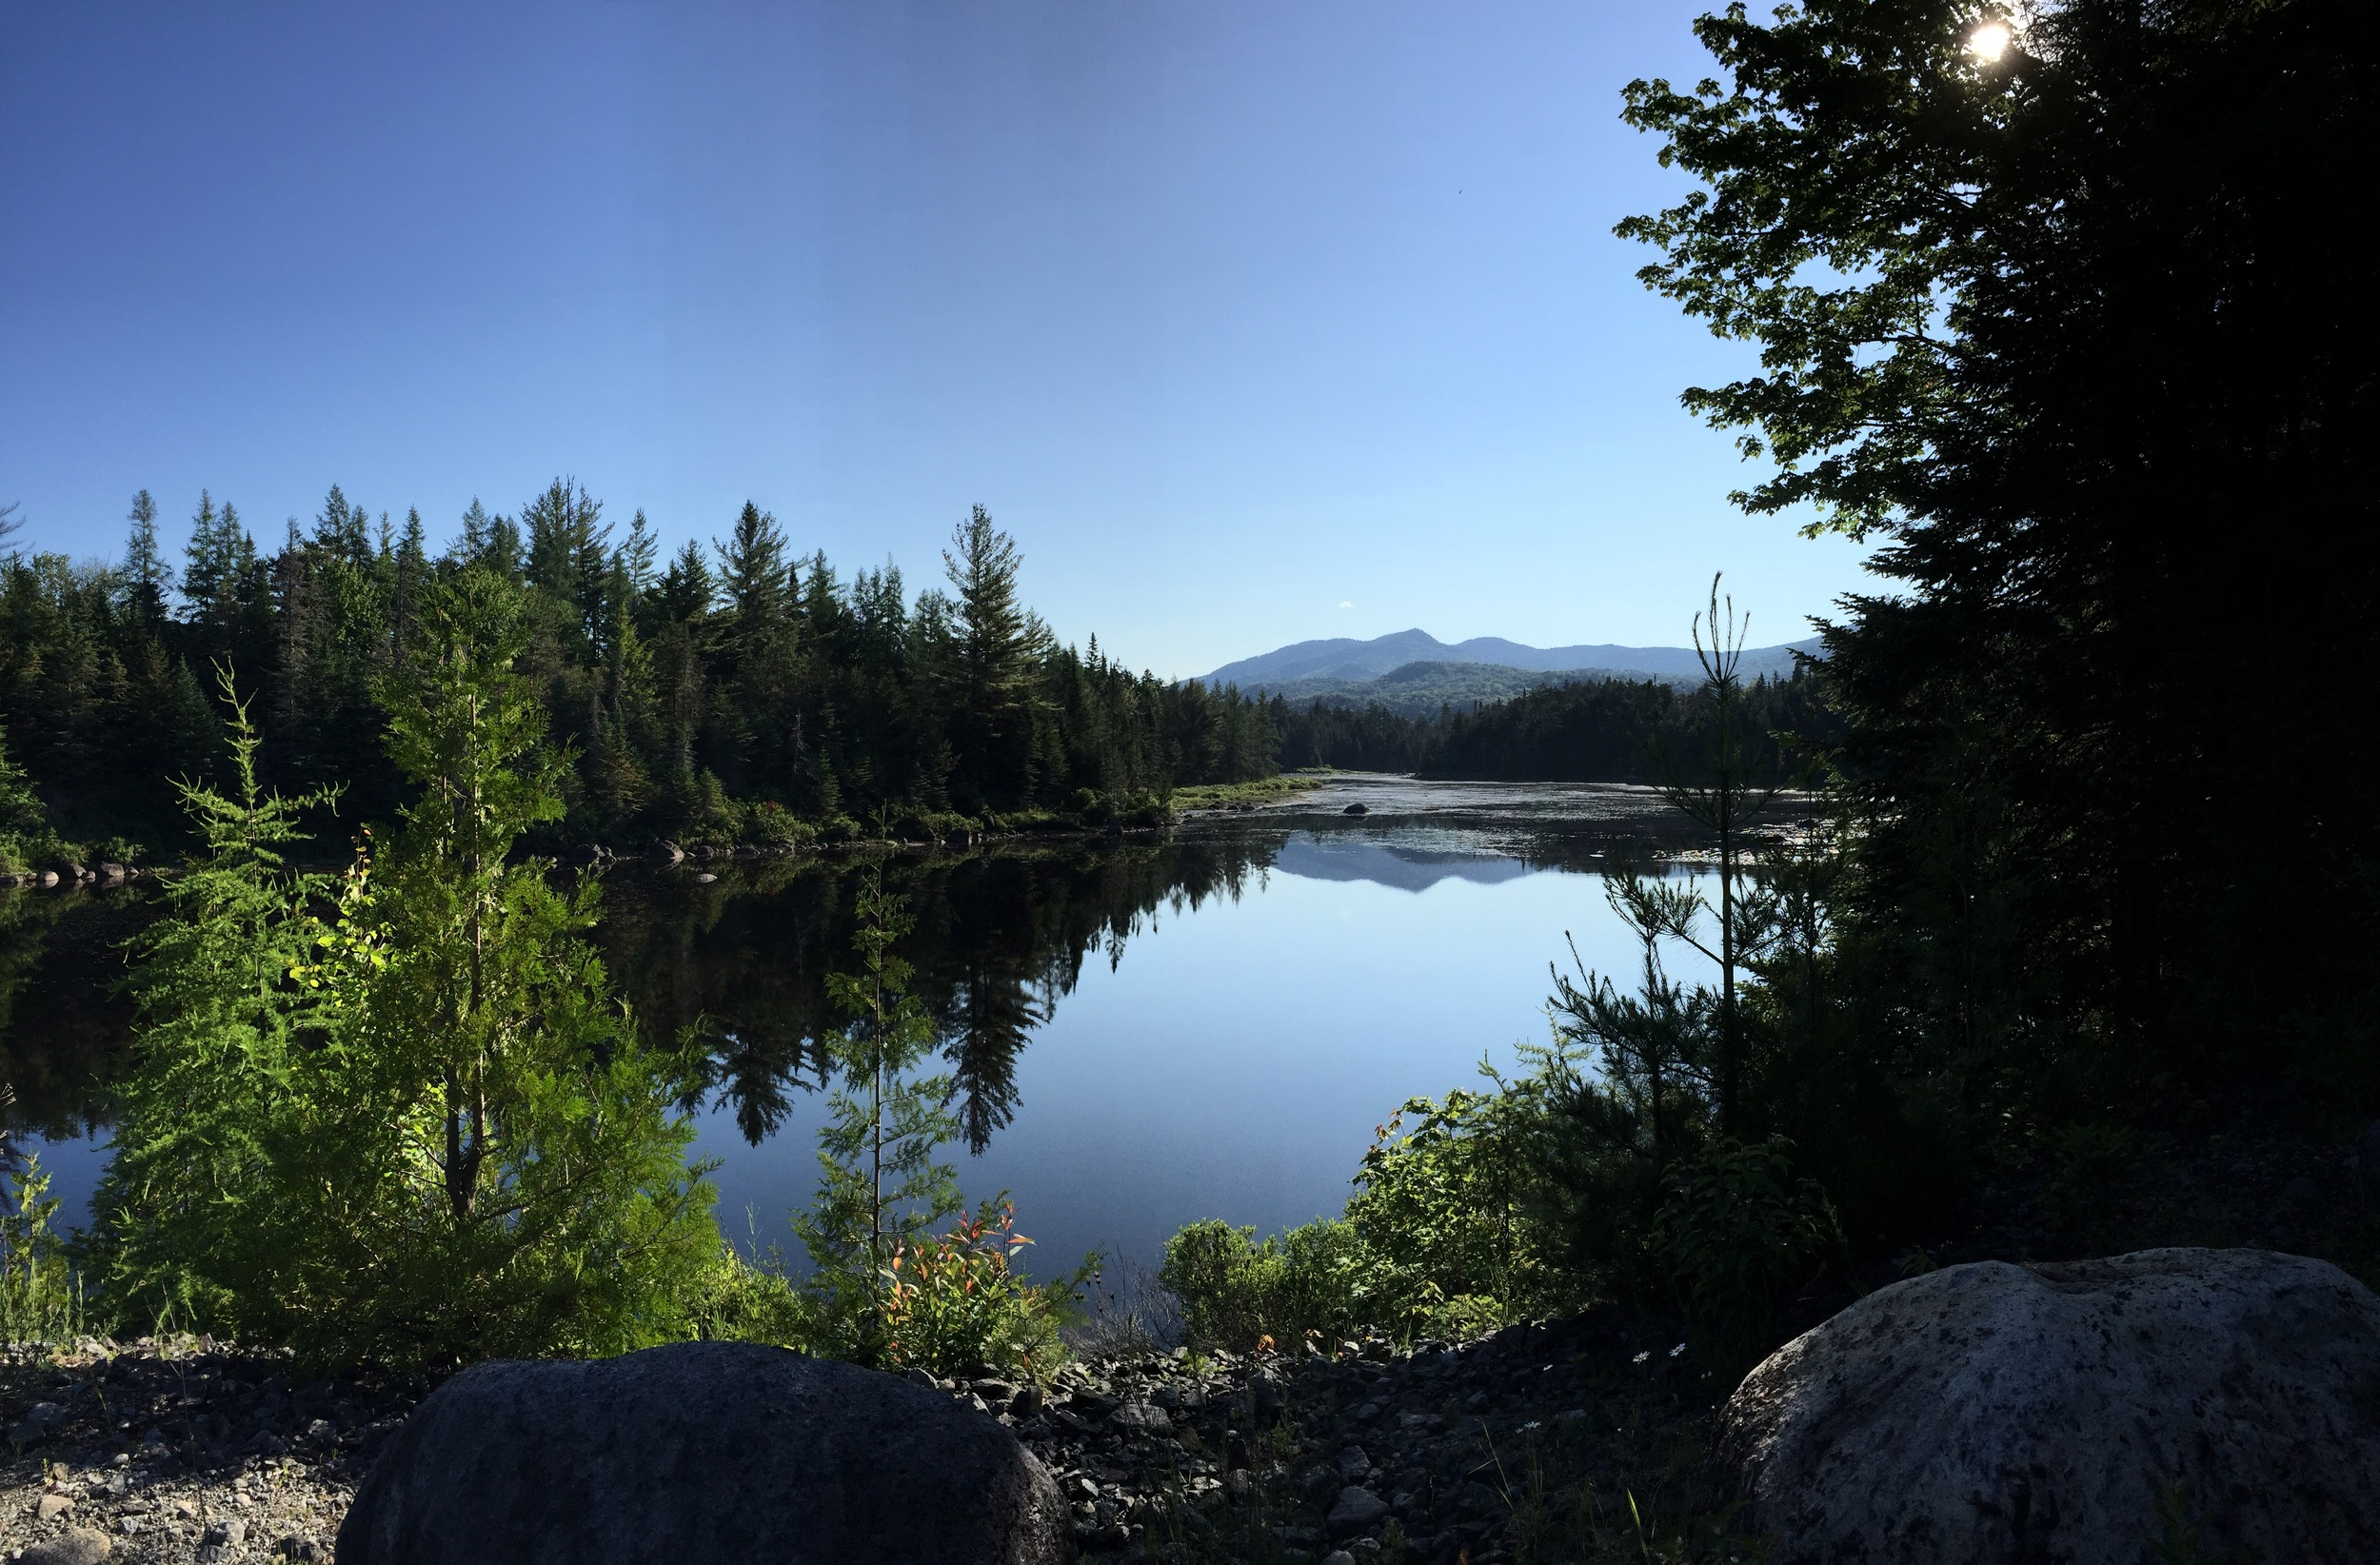 Boreas Pond outlet, one of my weekly hikes that is about 15 miles total.